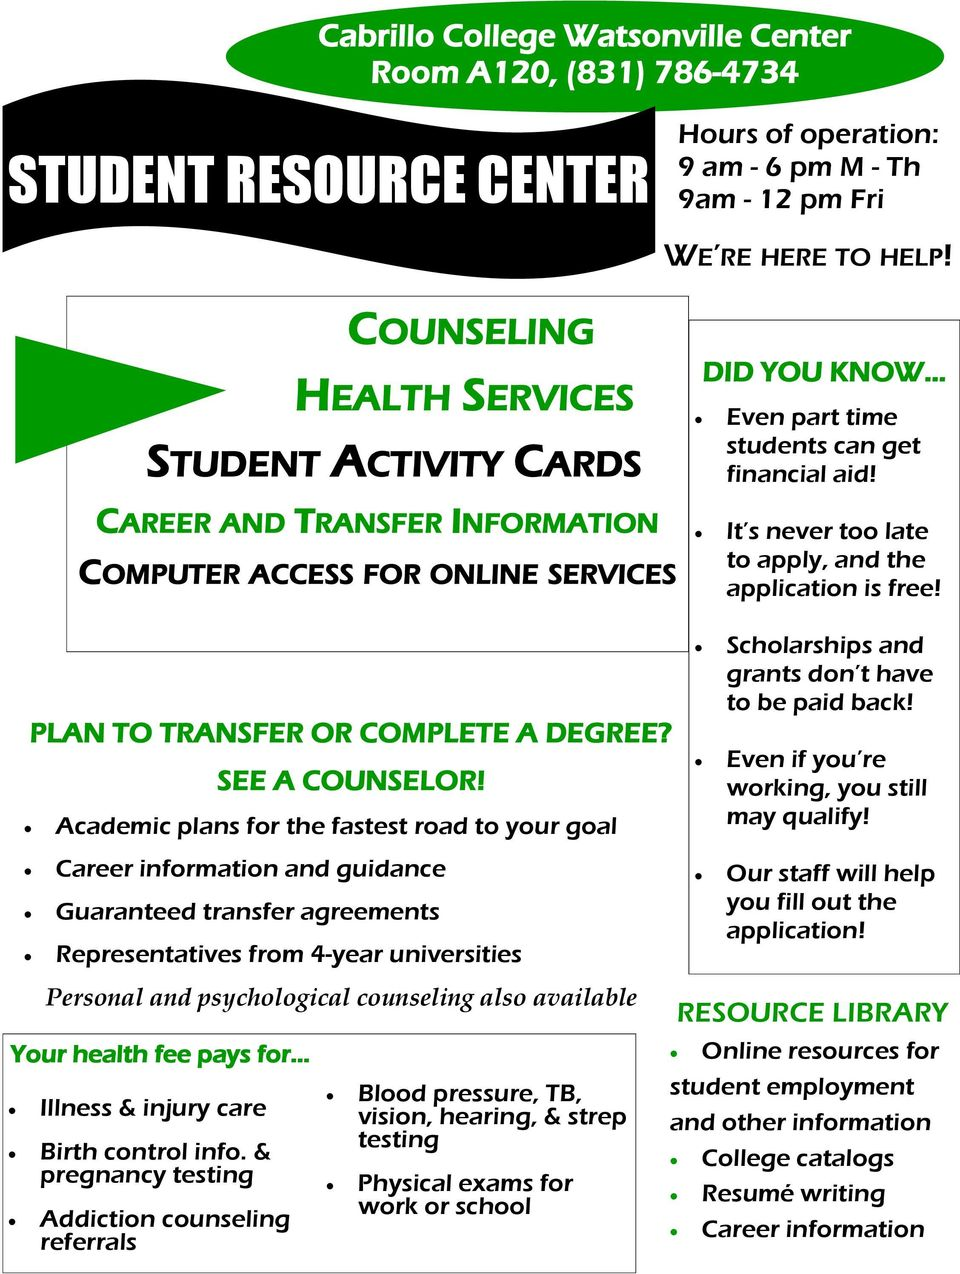 CAREER AND TRANSFER INFORMATION COMPUTER ACCESS FOR ONLINE SERVICES PLAN TO TRANSFER OR COMPLETE A DEGREE? SEE A COUNSELOR!